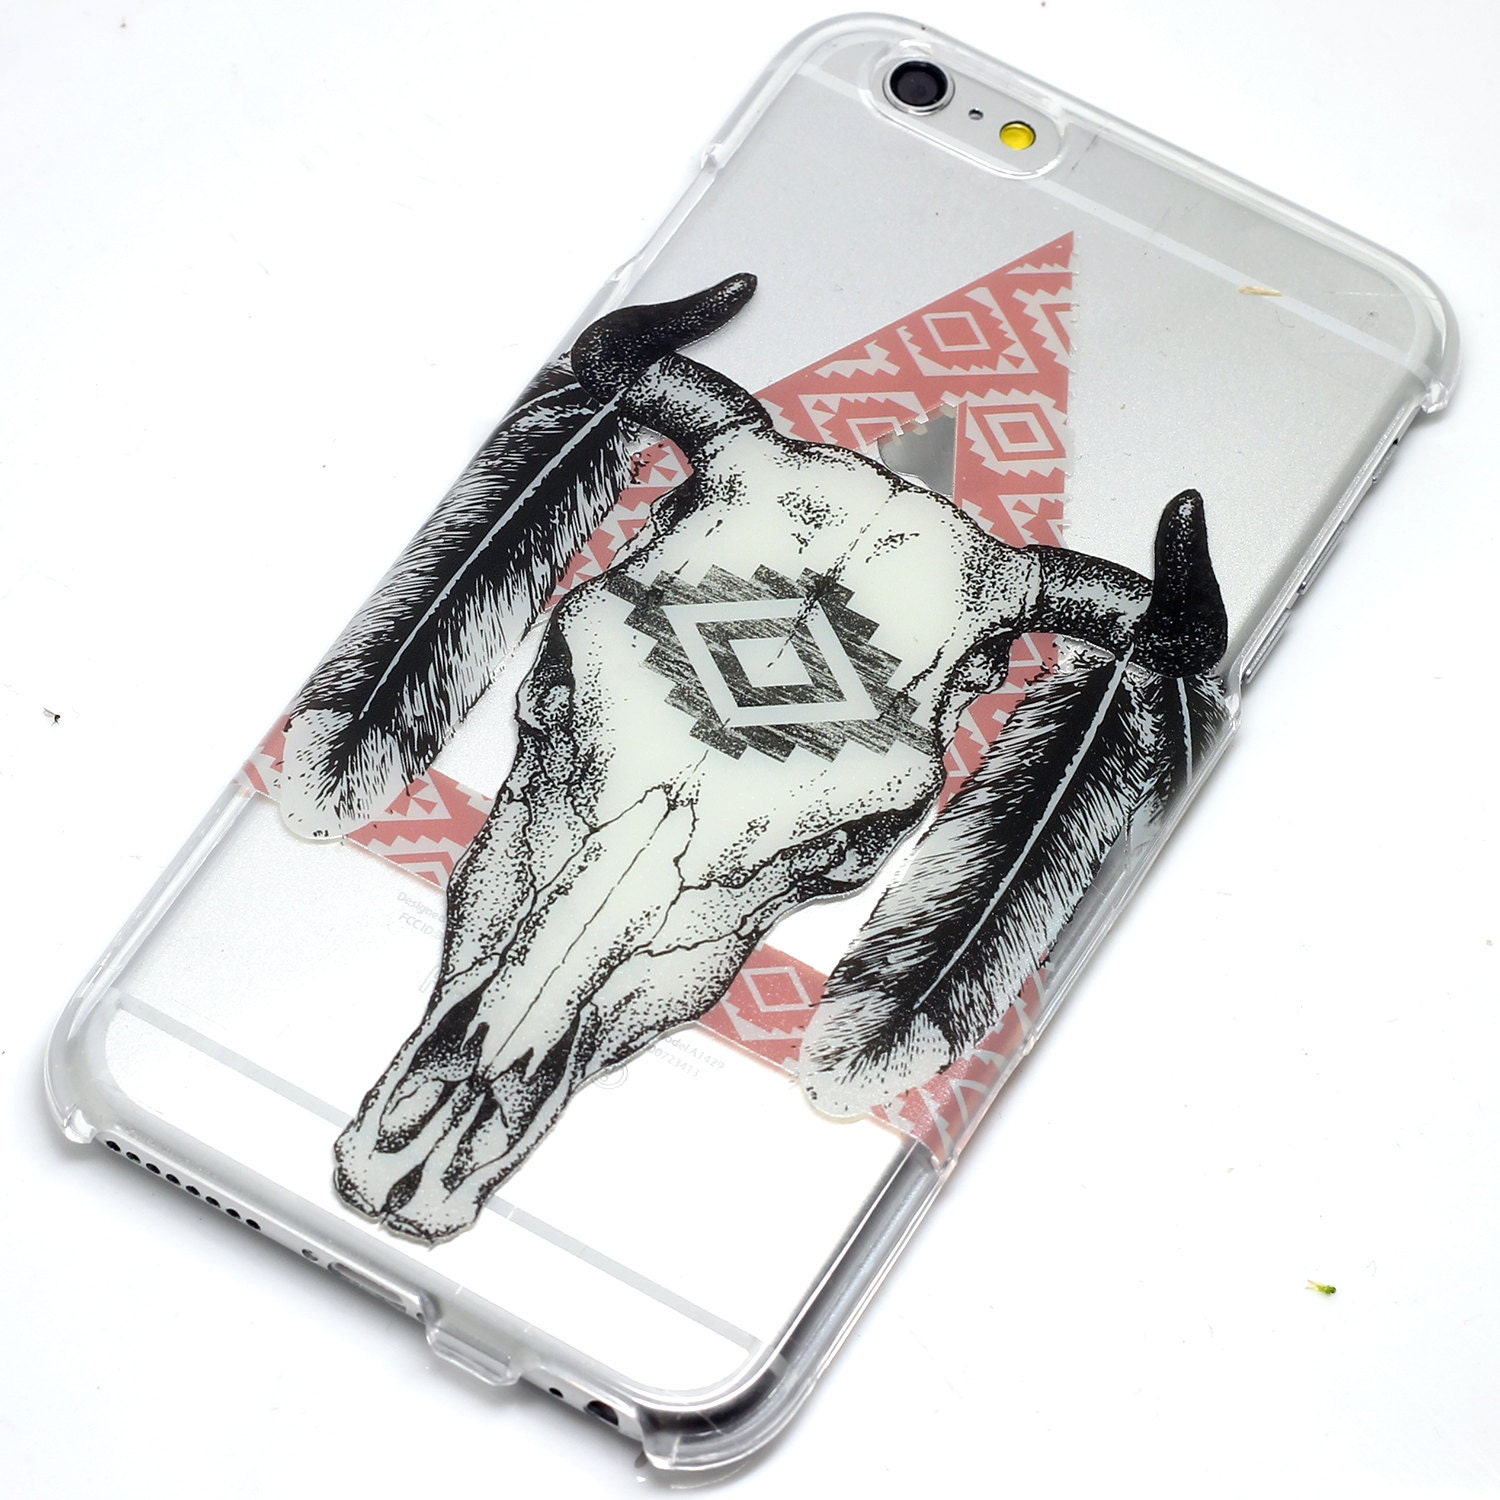 cow skull triangle feathers style phone case iphone 6 7 se 6